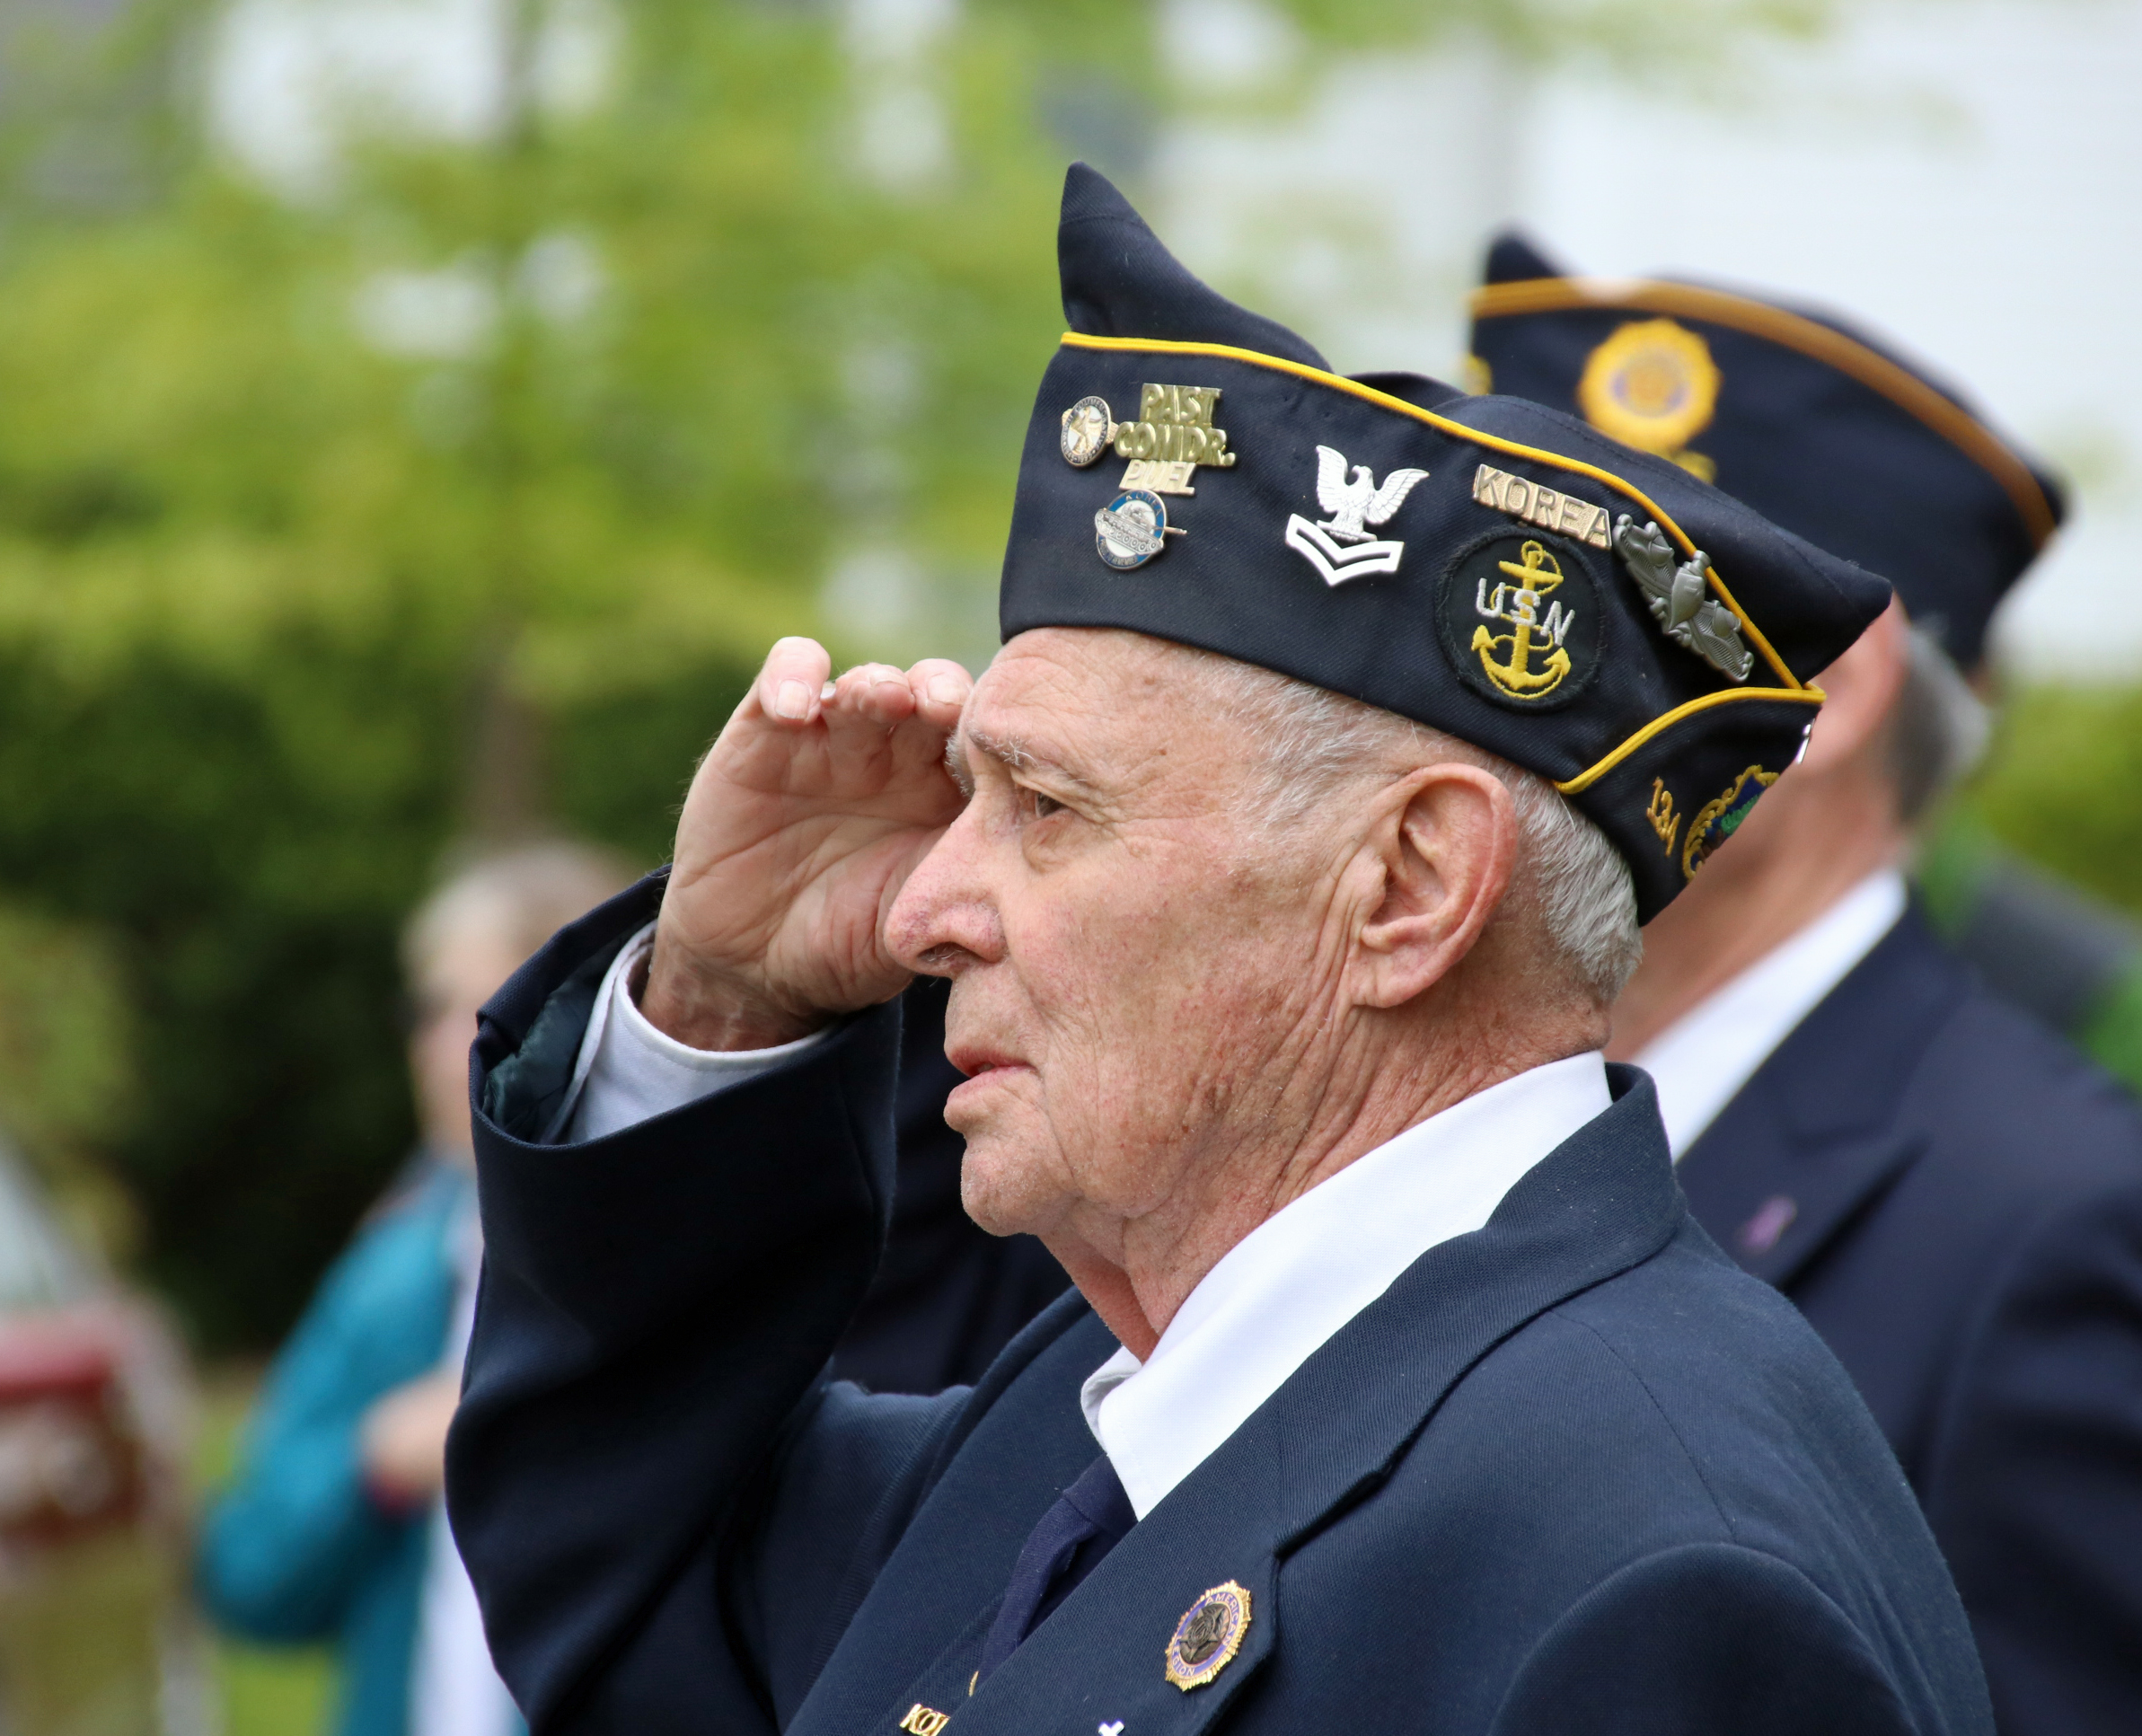 Robert Liberty of Alfred, a U.S. Navy veteran of the Korean War and a member of the Brown Emmons Post 134, American Legion, was among those marching in the Memorial Day parade in Alfred this morning.  The parade alternates annually between Alfred and Waterboro. COURTESY PHOTO/Tammy Wells